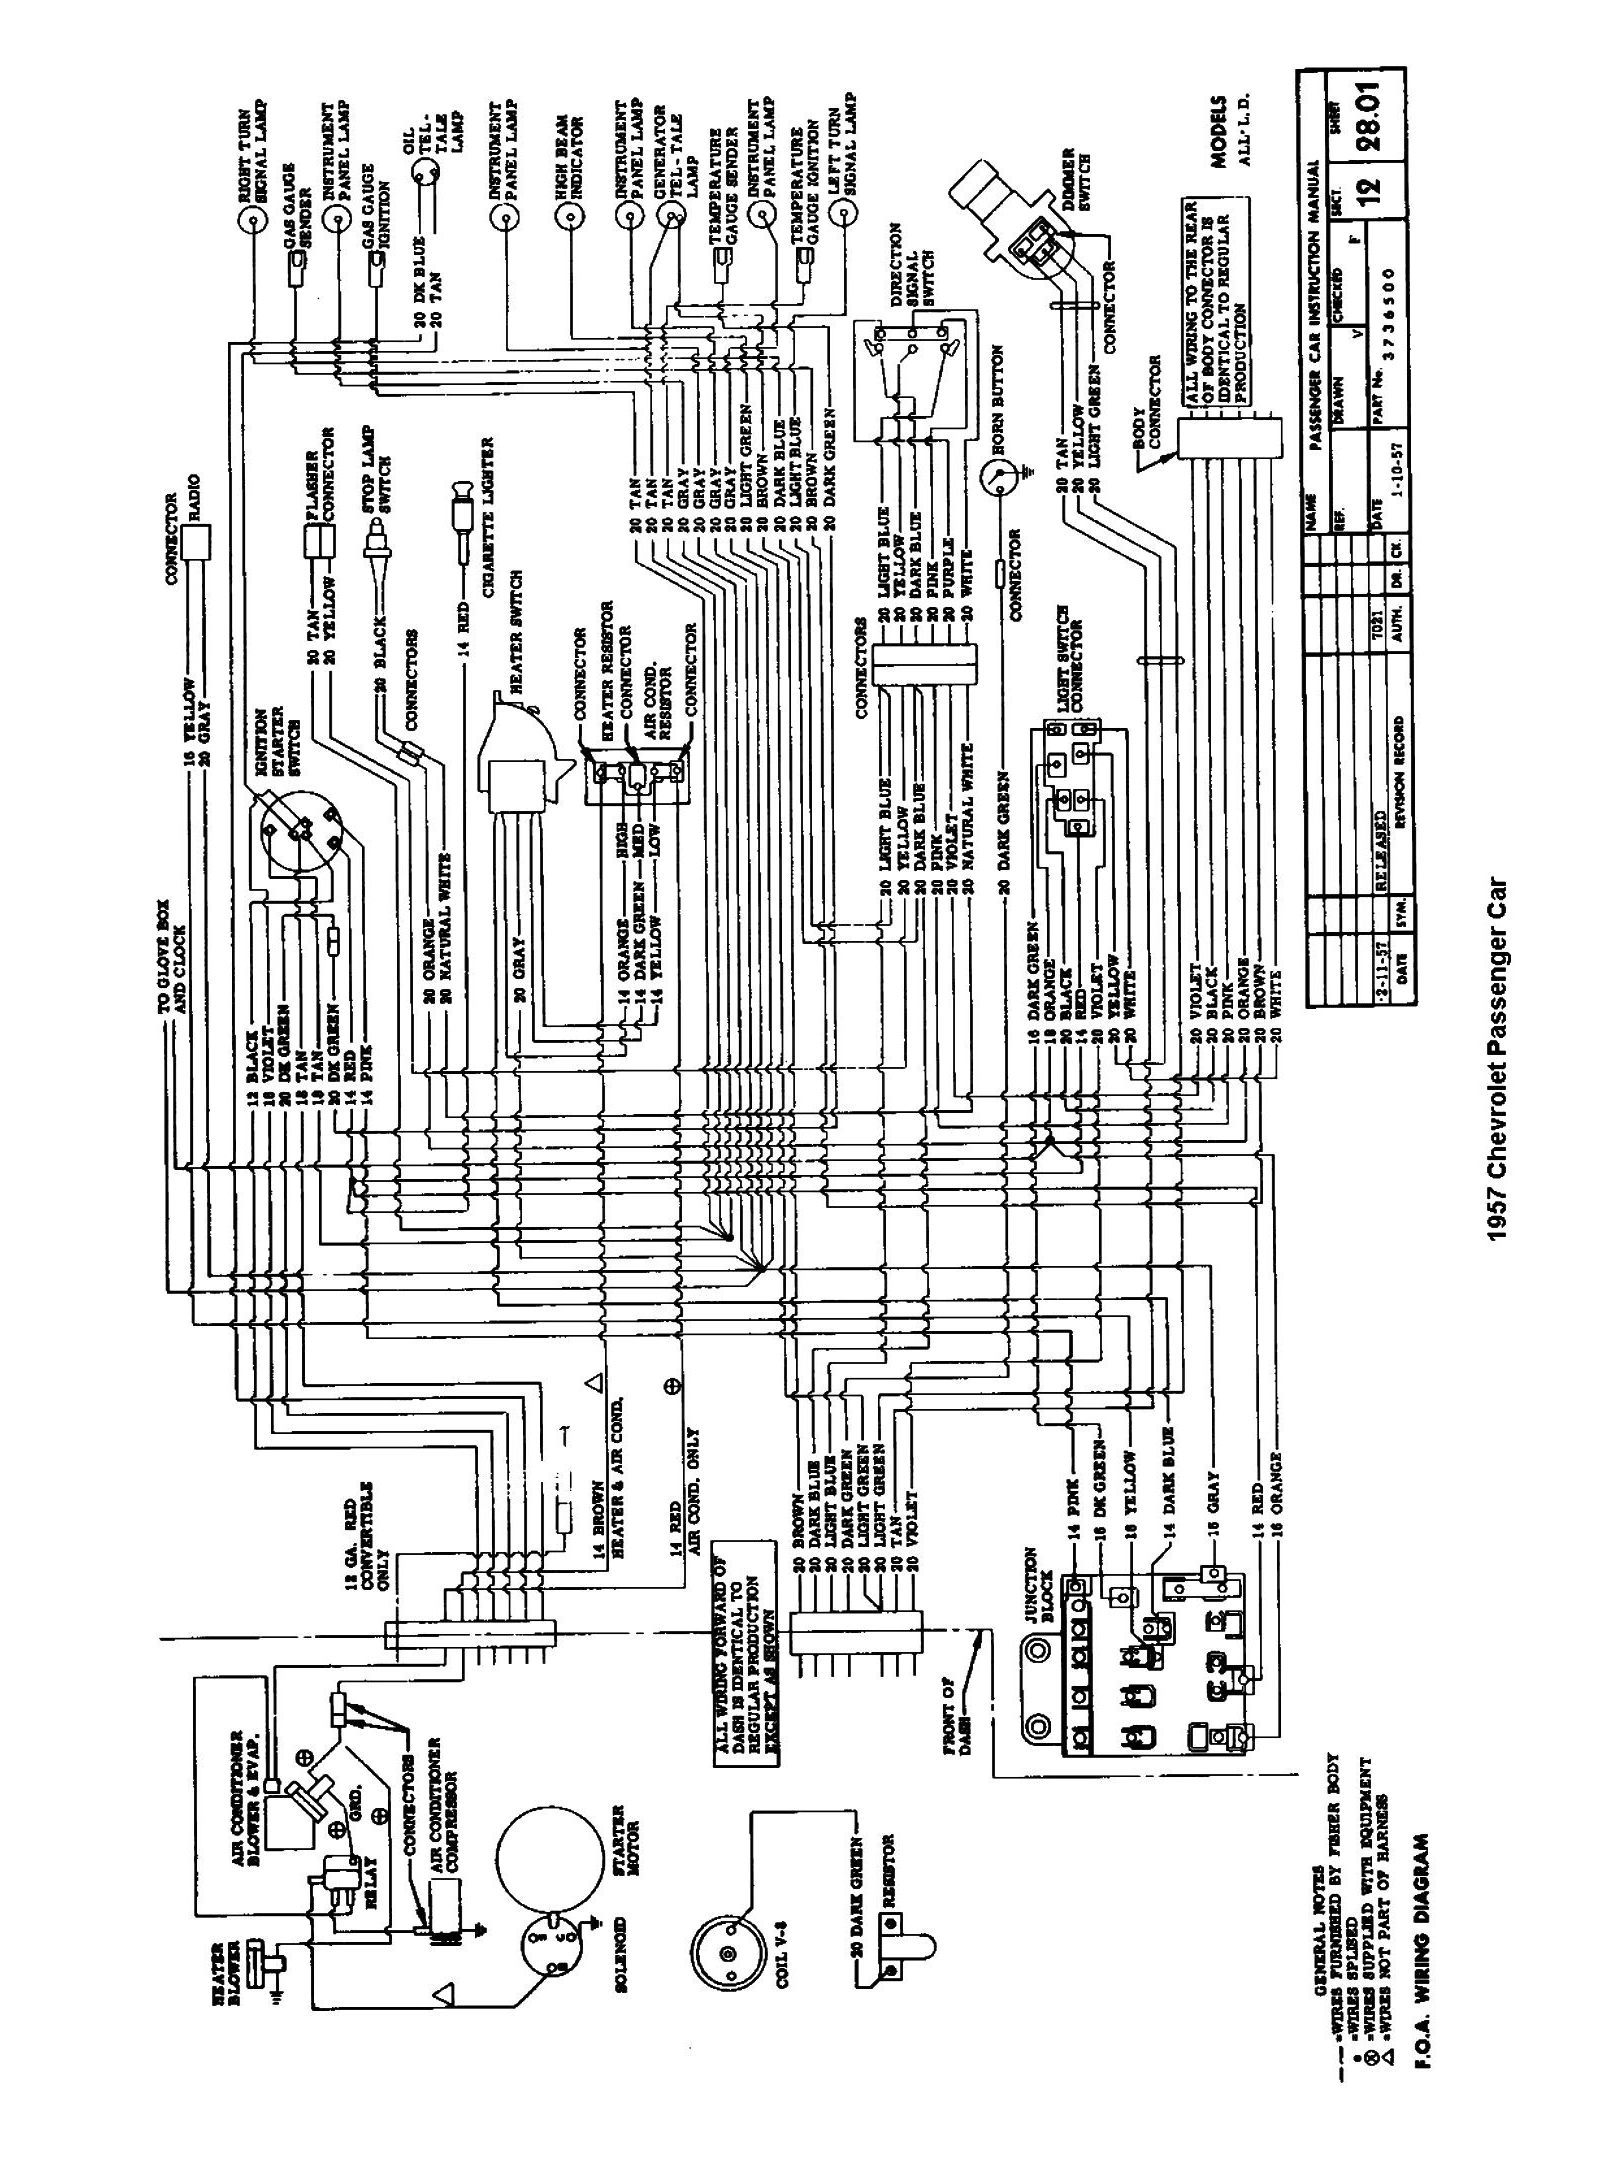 Chevy Wiring Diagrams Jeep Wrangler Diagram 51 1 1957 Passenger Car 2